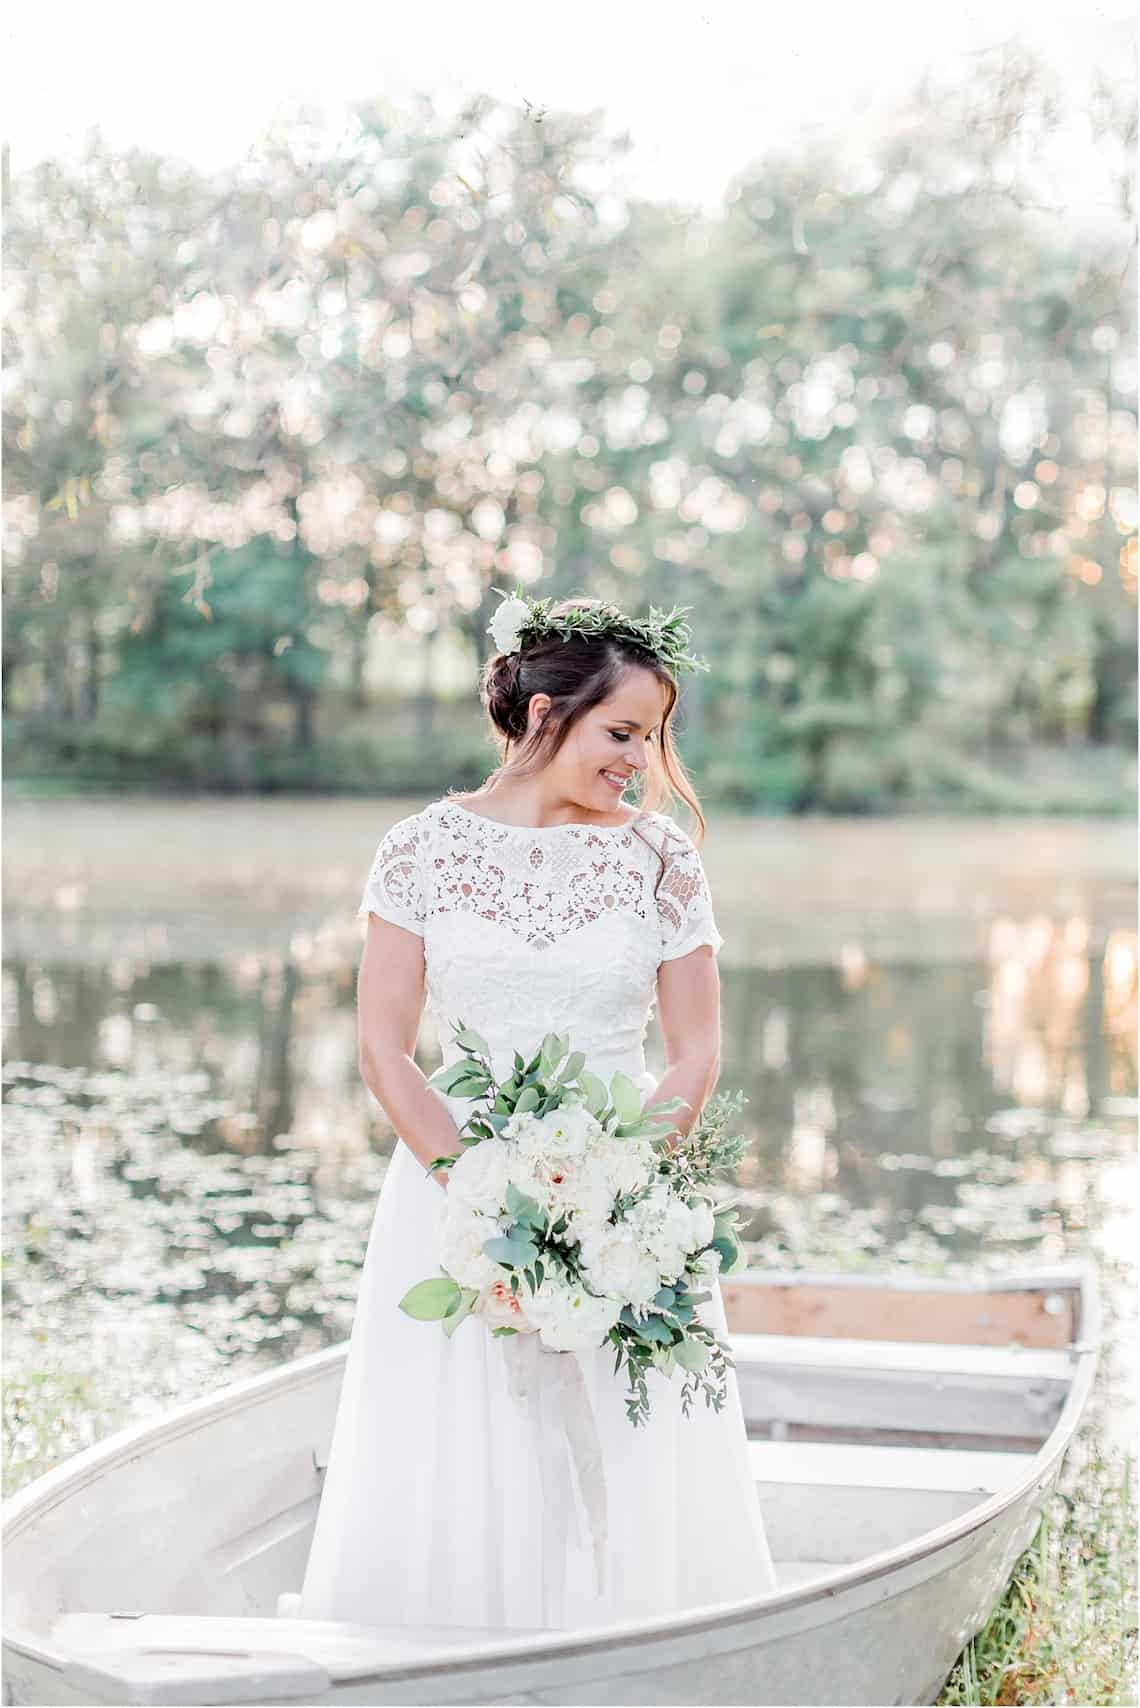 Bride Standing in Boat on Lake with White Flower Bouquet